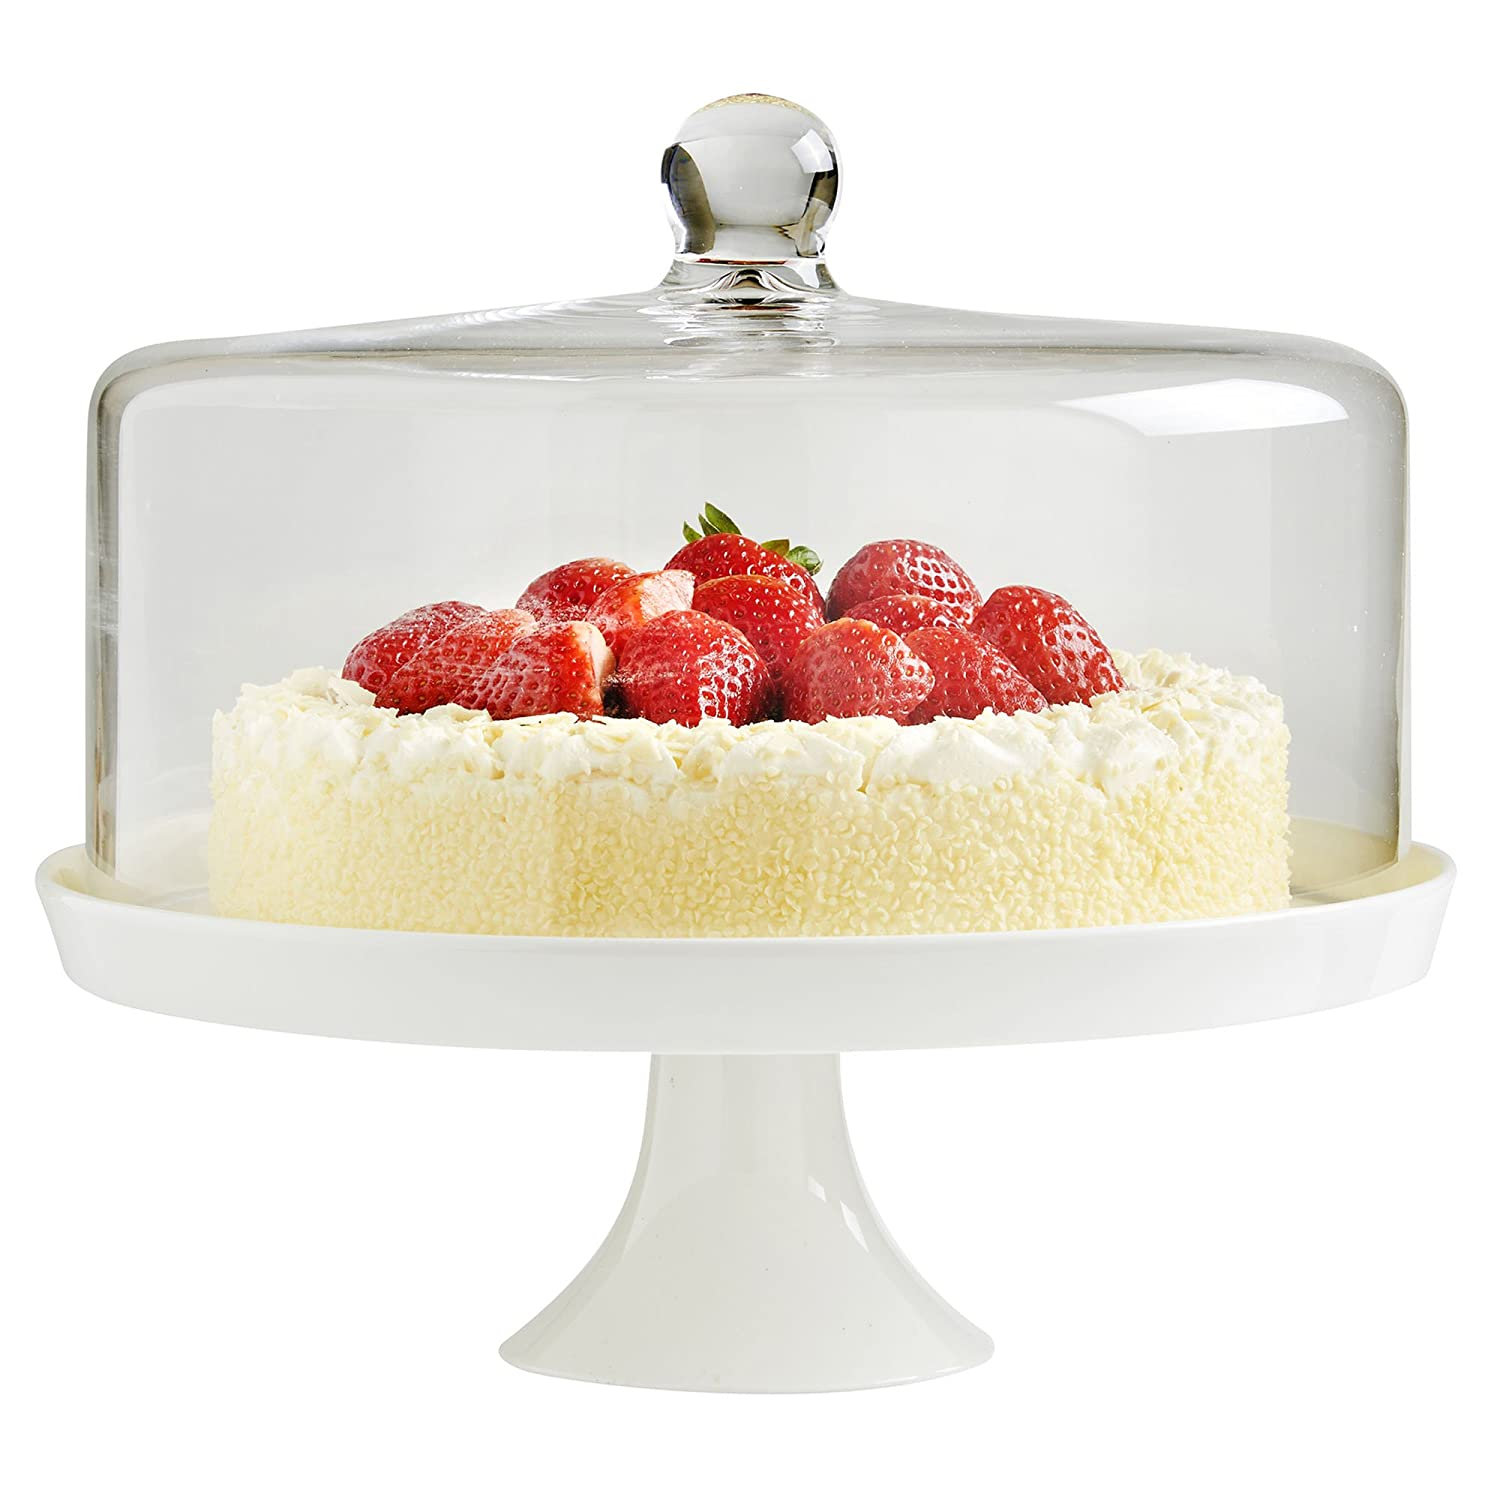 vonshef white ceramic cake stand with glass dome lid 30cm amazoncouk kitchen u0026 home